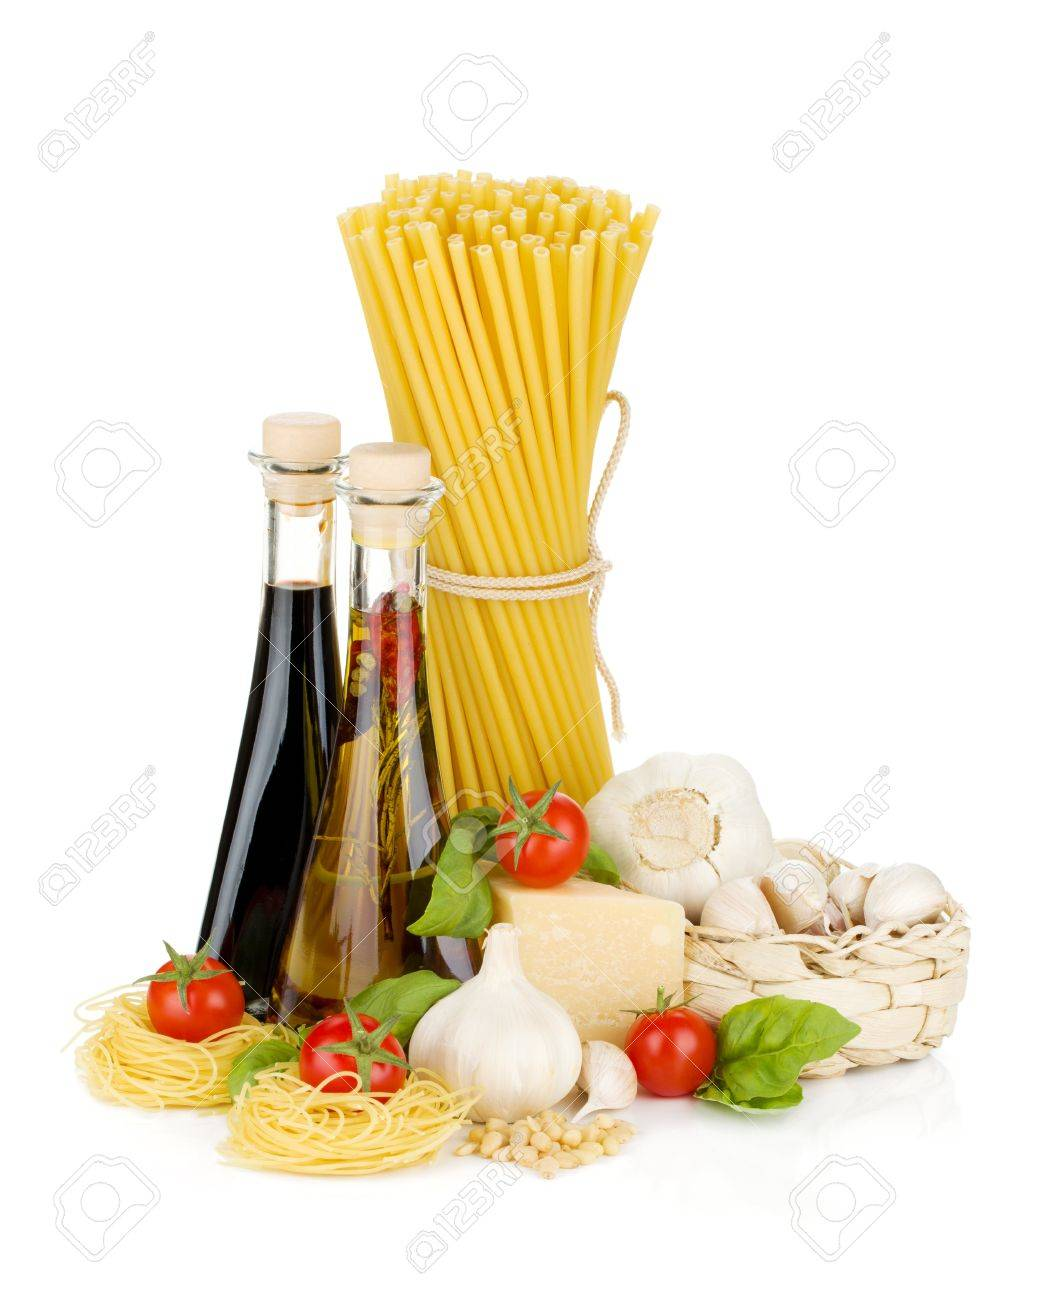 Pasta, tomatoes, basil, olive oil, vinegar, garlic and parmesan cheese. Isolated on white background Stock Photo - 12780199